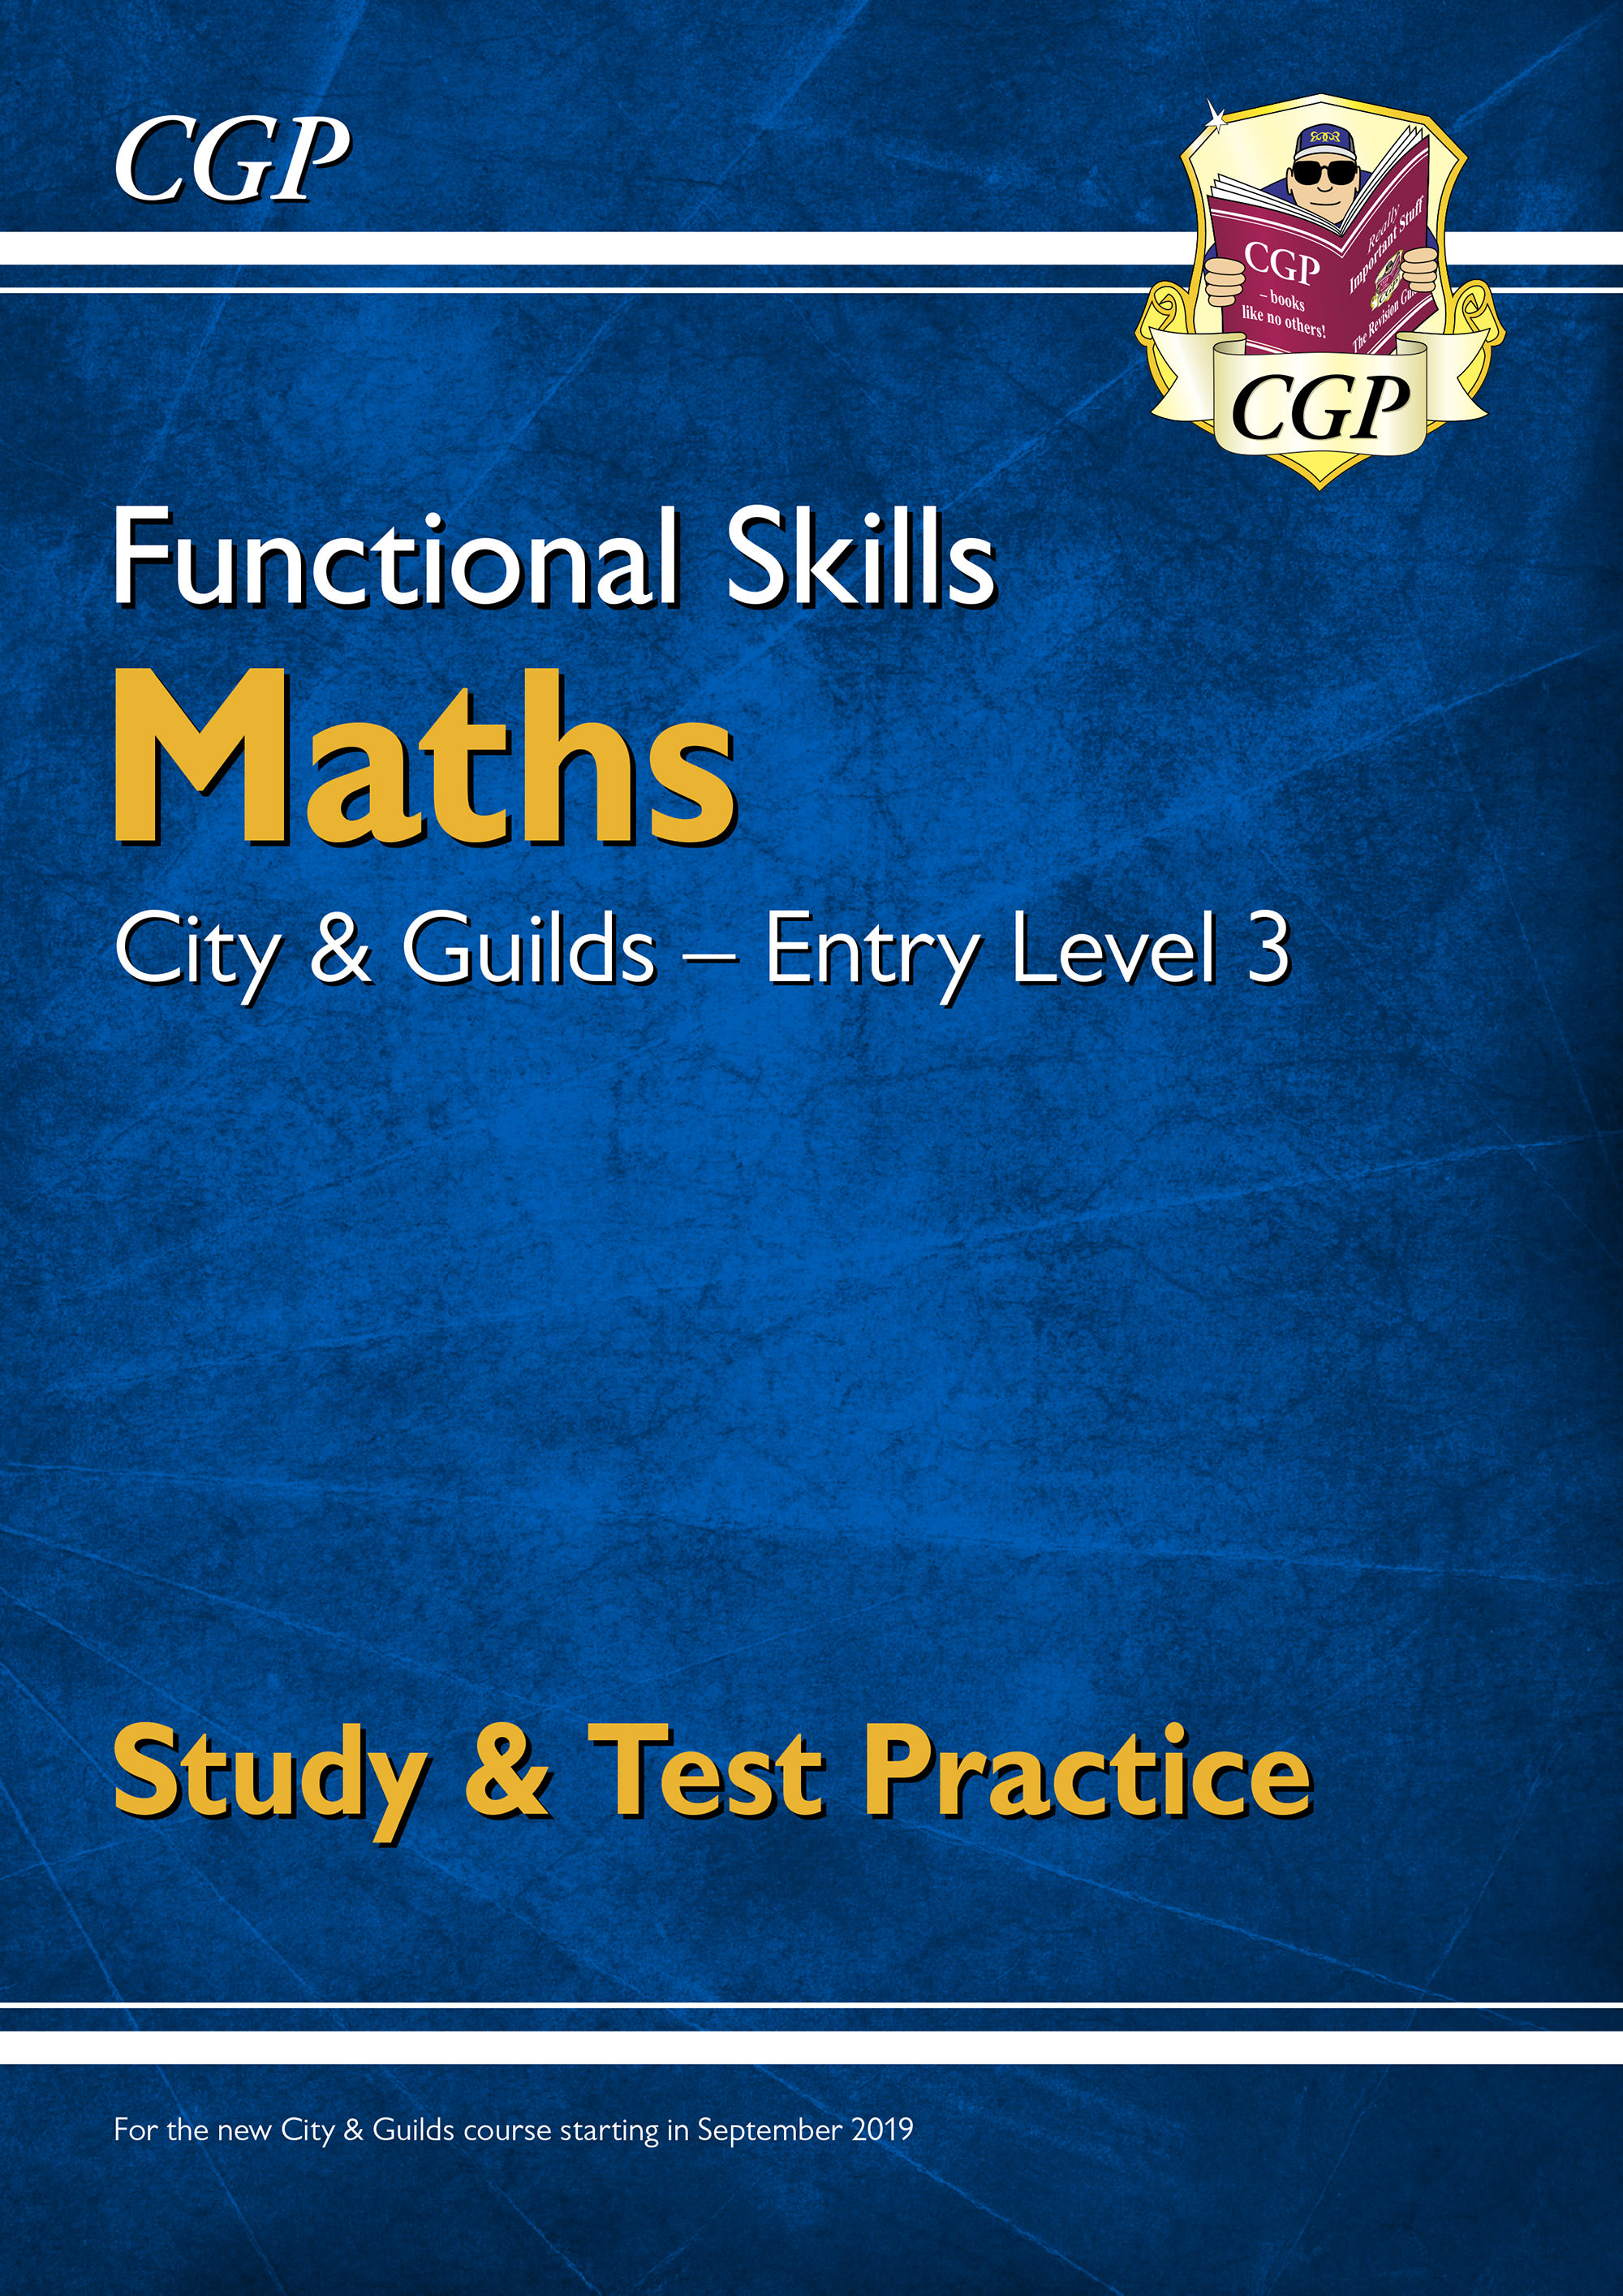 M3CGSRA1DK - Functional Skills Maths: City & Guilds Entry Level 3 - Study & Test Practice (for 2021